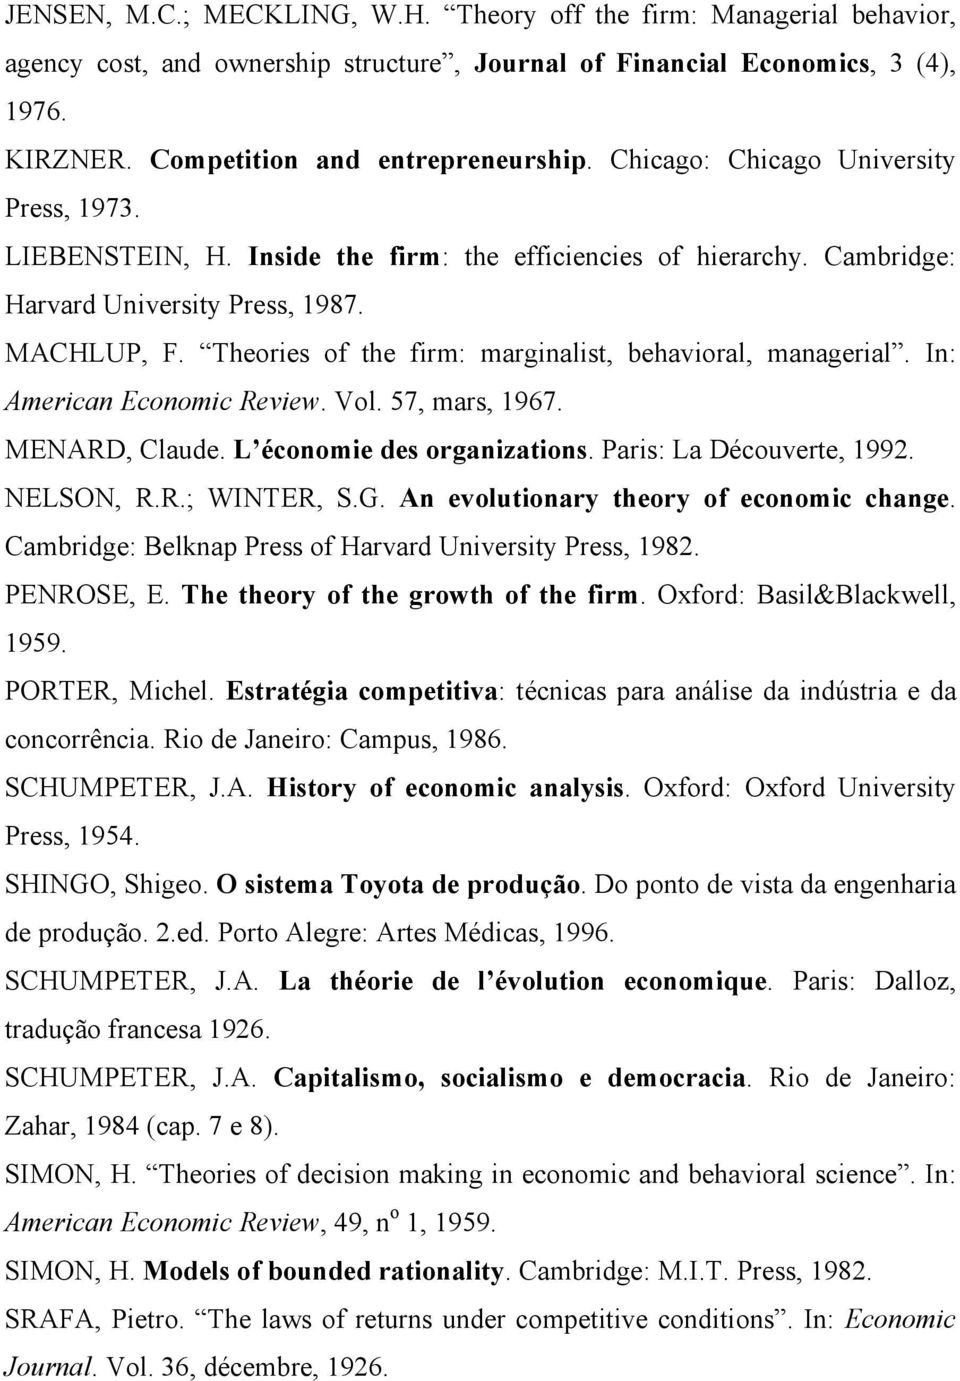 Theories of the firm: marginalist, behavioral, managerial. In: American Economic Review. Vol. 57, mars, 1967. MENARD, Claude. L économie des organizations. Paris: La Découverte, 1992. NELSON, R.R.; WINTER, S.